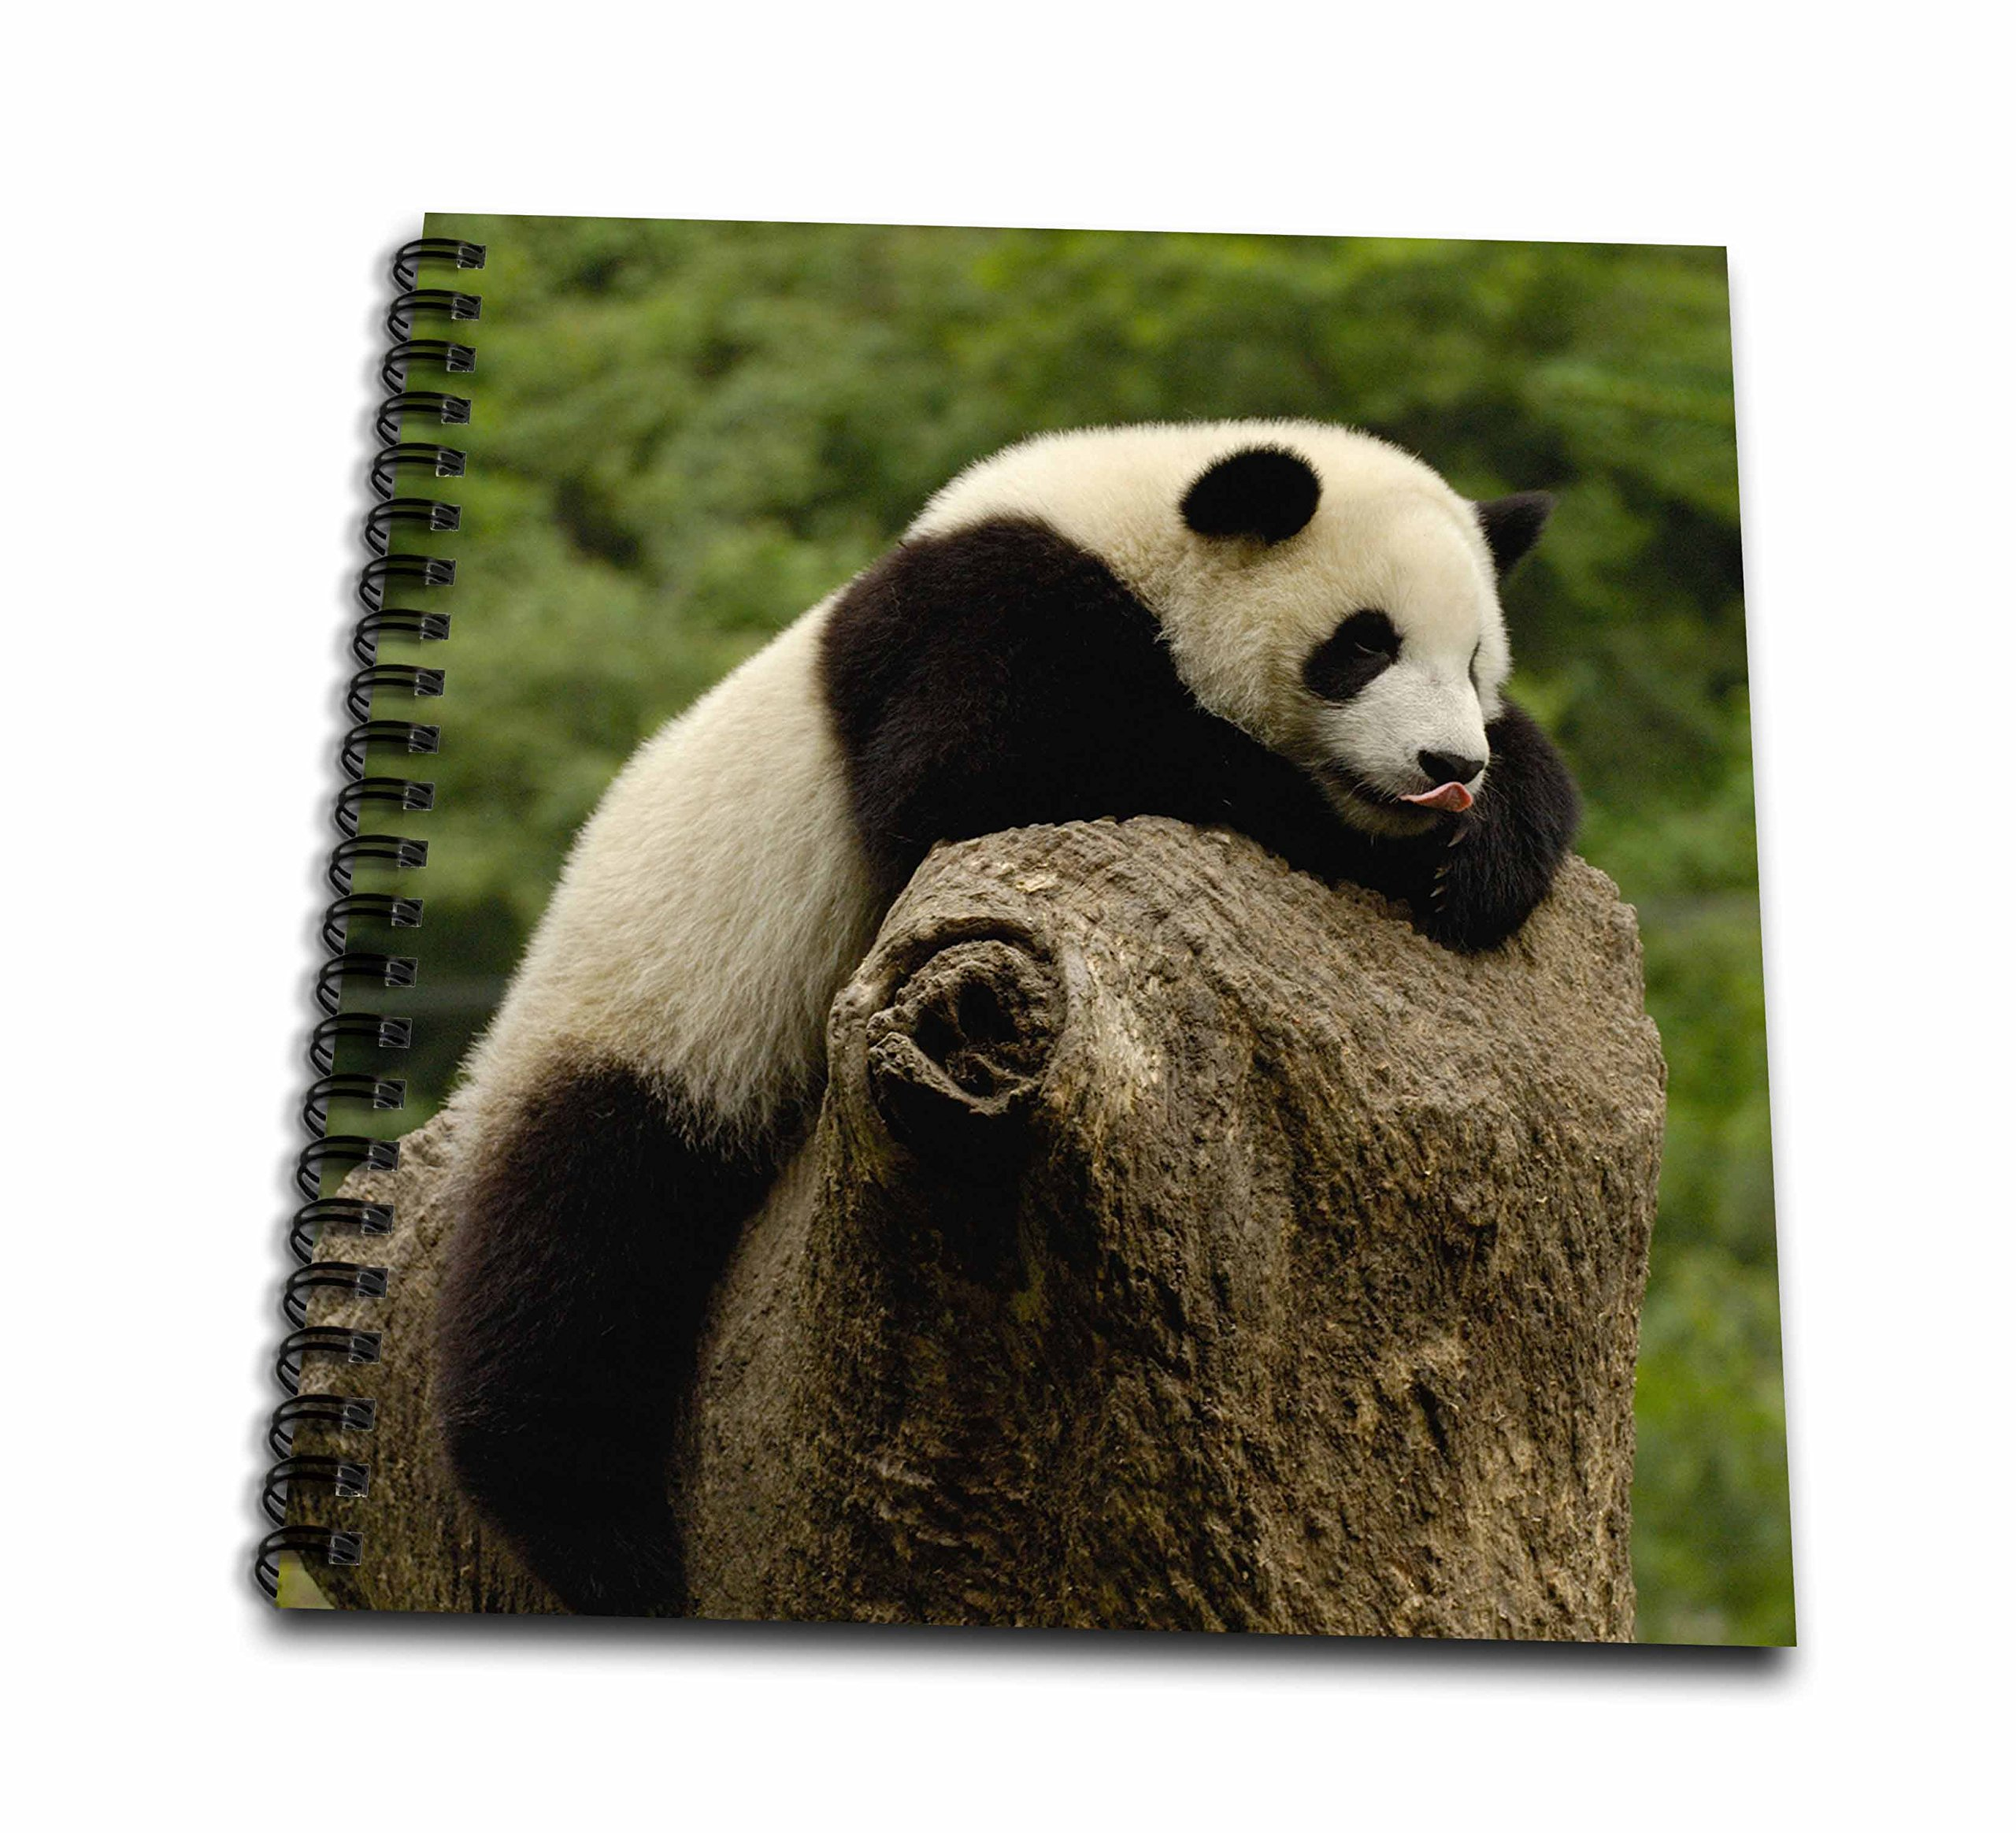 3dRose db_70207_1 Giant Panda Bears, Wolong China Conservation, China-As07 Pox0374-Pete Oxford-Drawing Book, 8 by 8-Inch